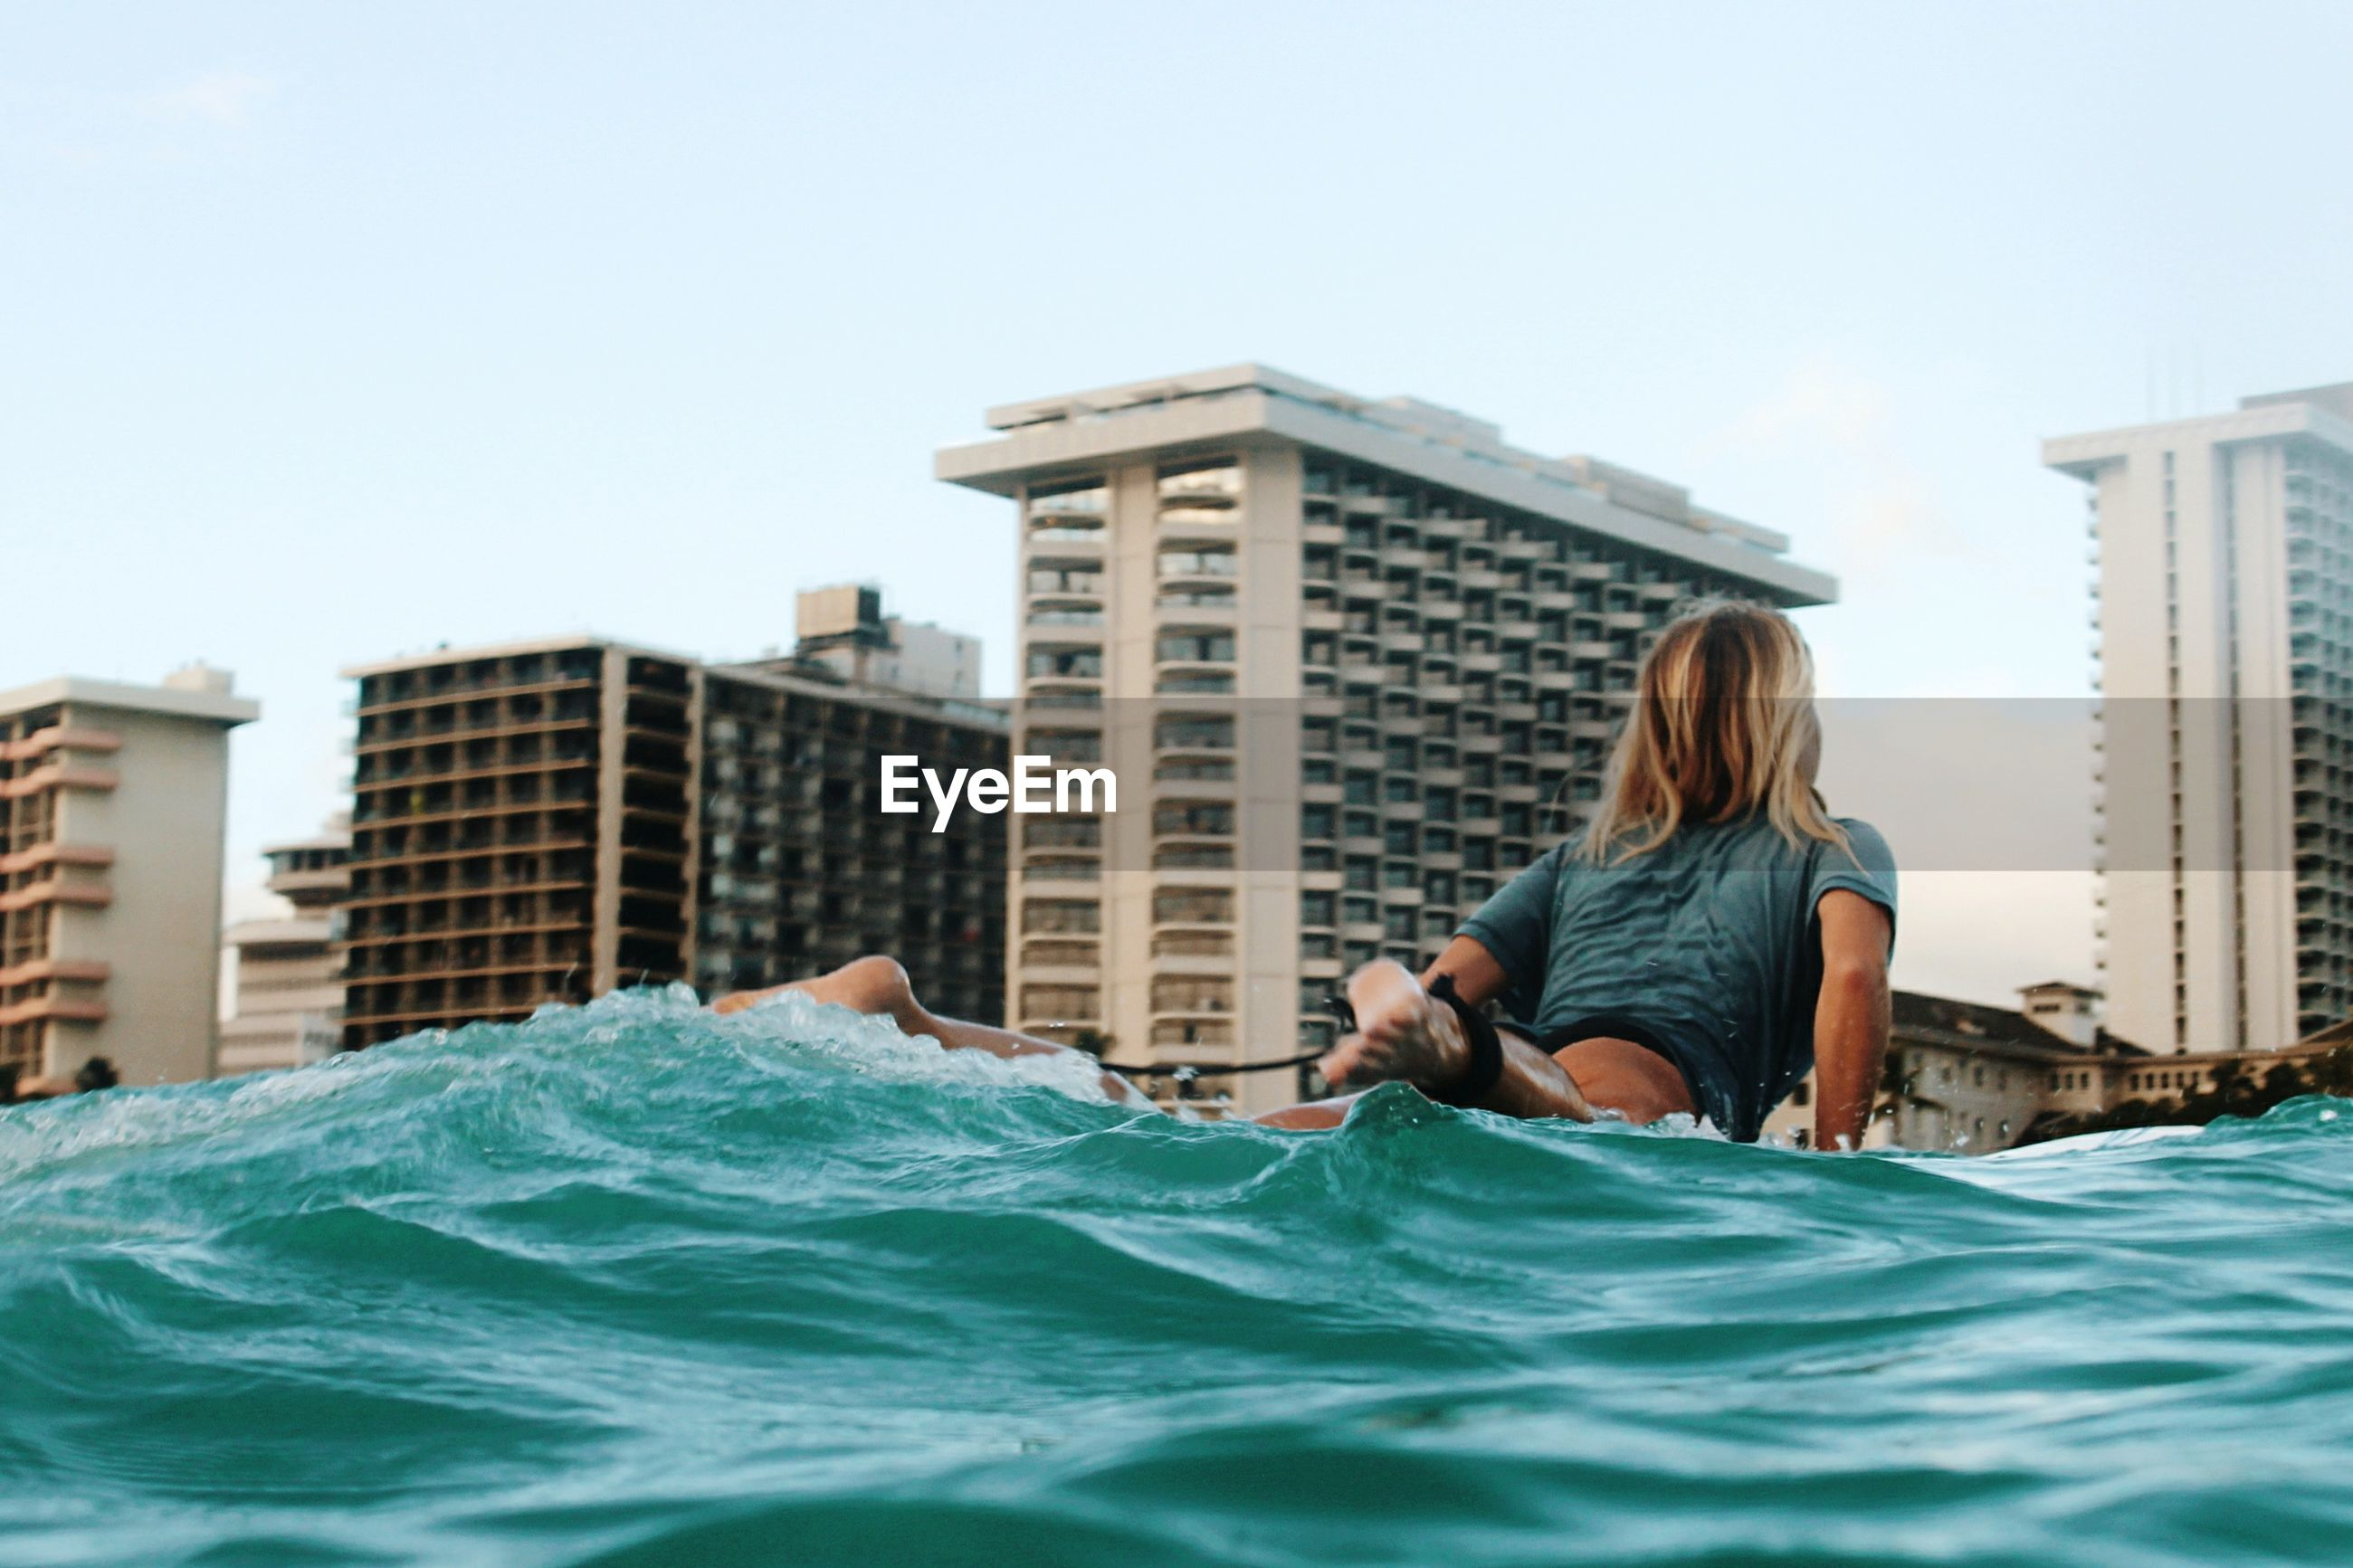 Low angle view of woman swimming in sea against buildings